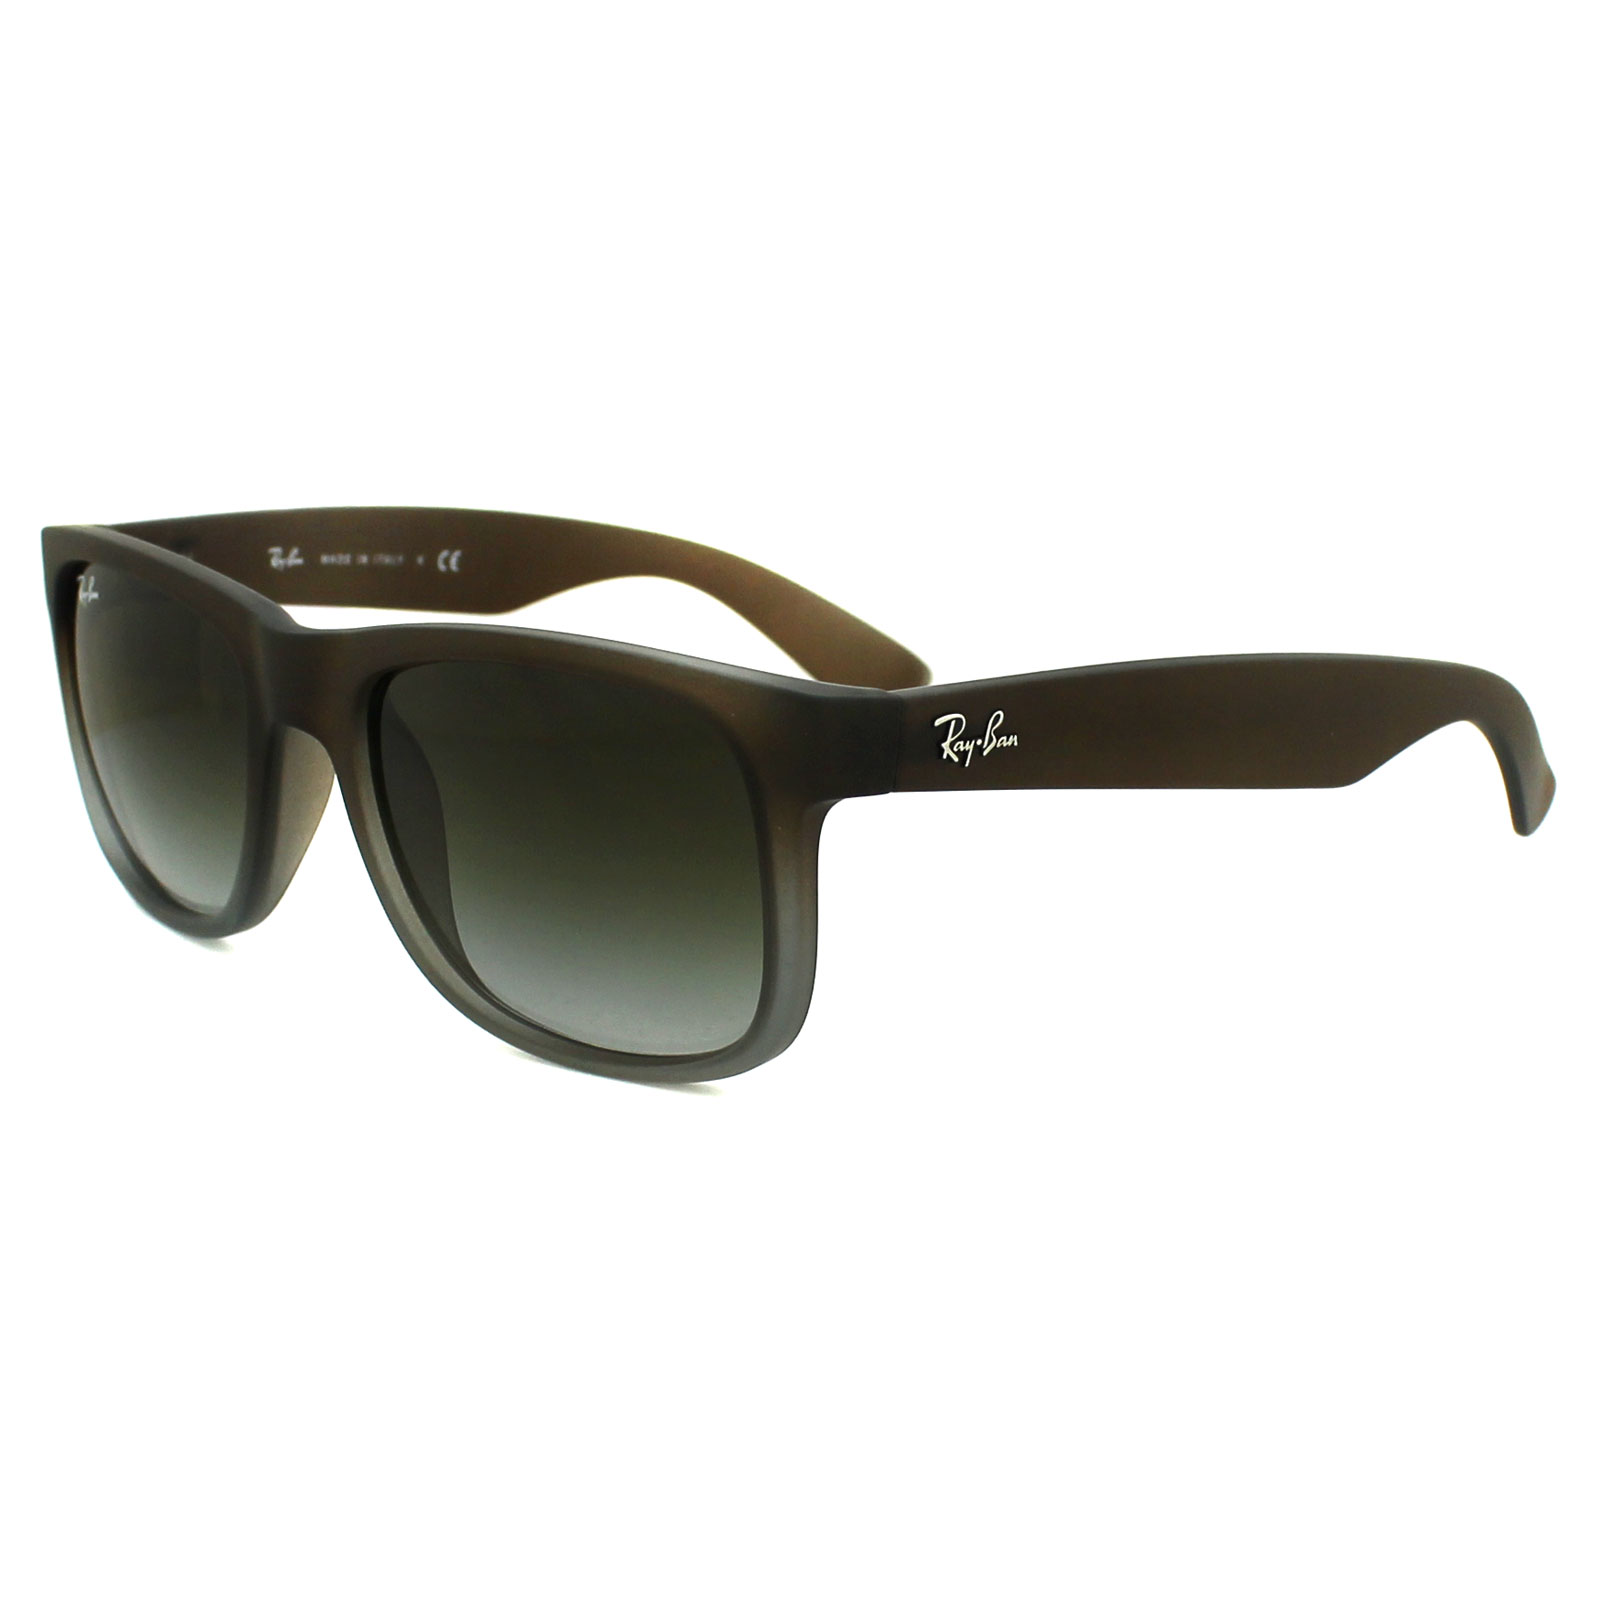 5d730d85c5 Sentinel Ray-Ban Sunglasses Justin 4165 854 7Z Rubber Brown Fade Green  Gradient Small